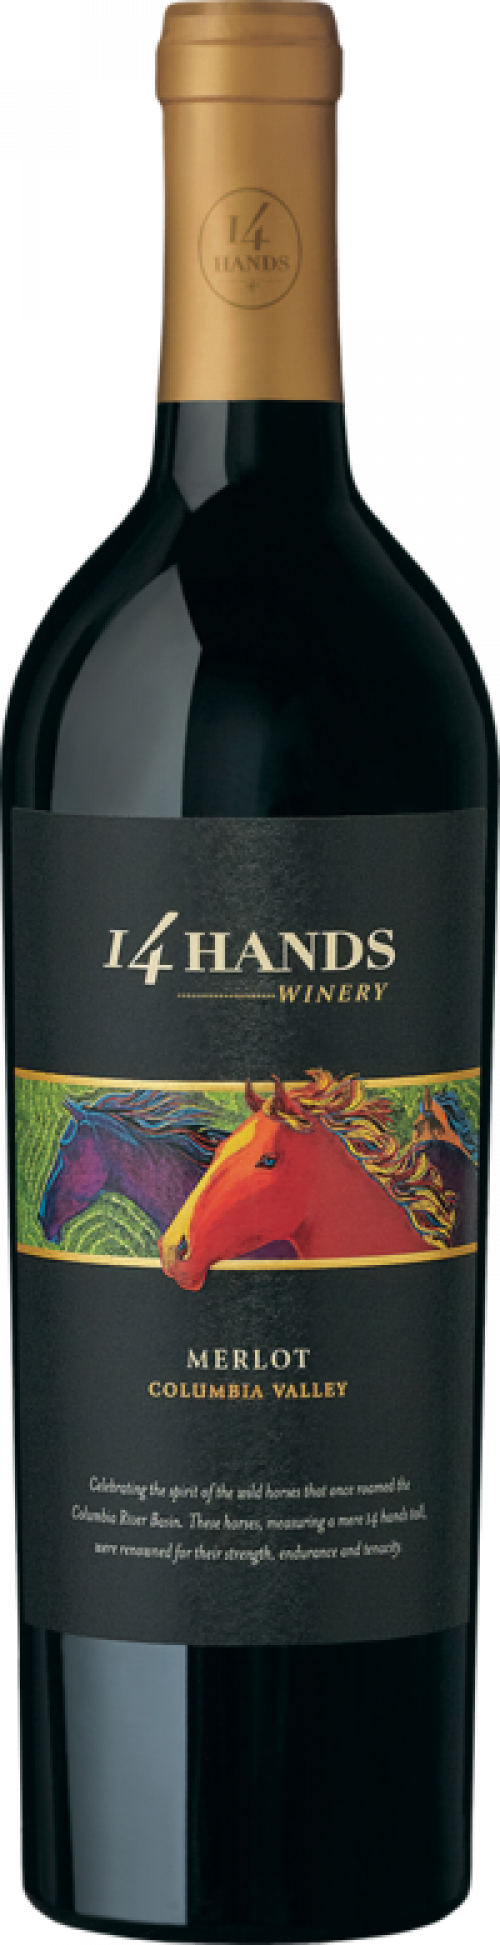 14 Hands Merlot 750ml NV